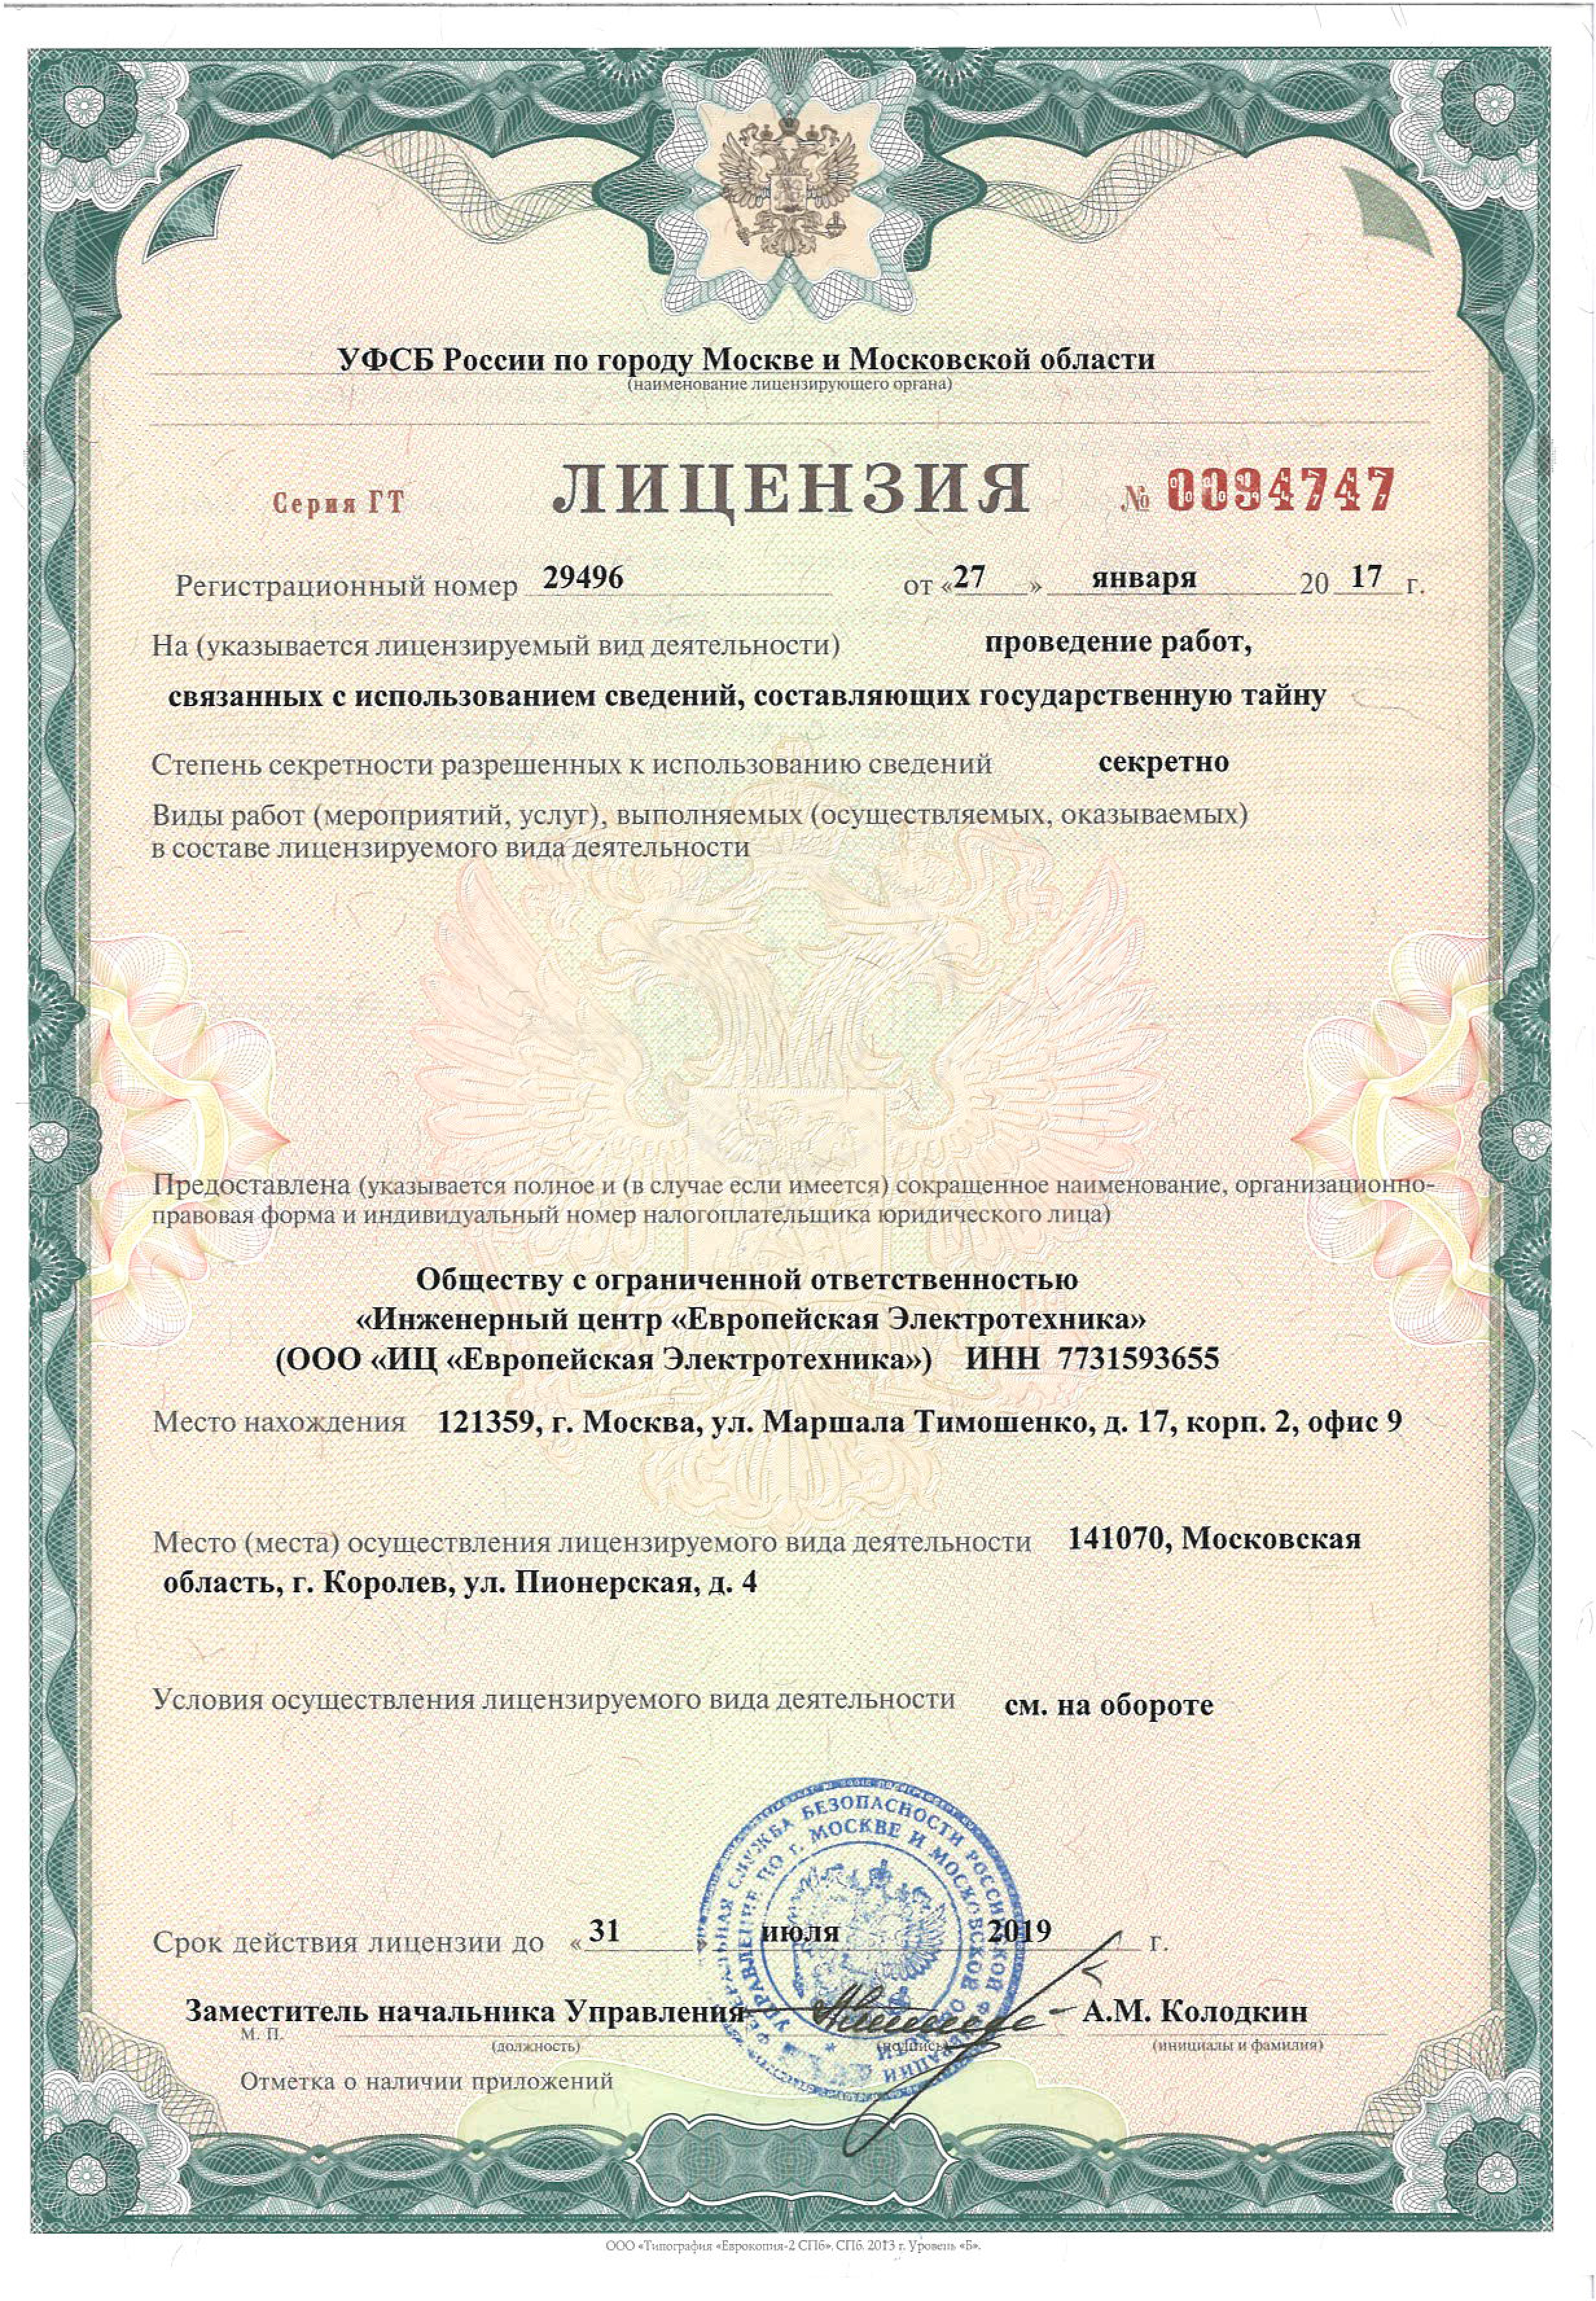 Federal Security Service License for Admission to the Works Concerning the Information that Constitutes the State Secret